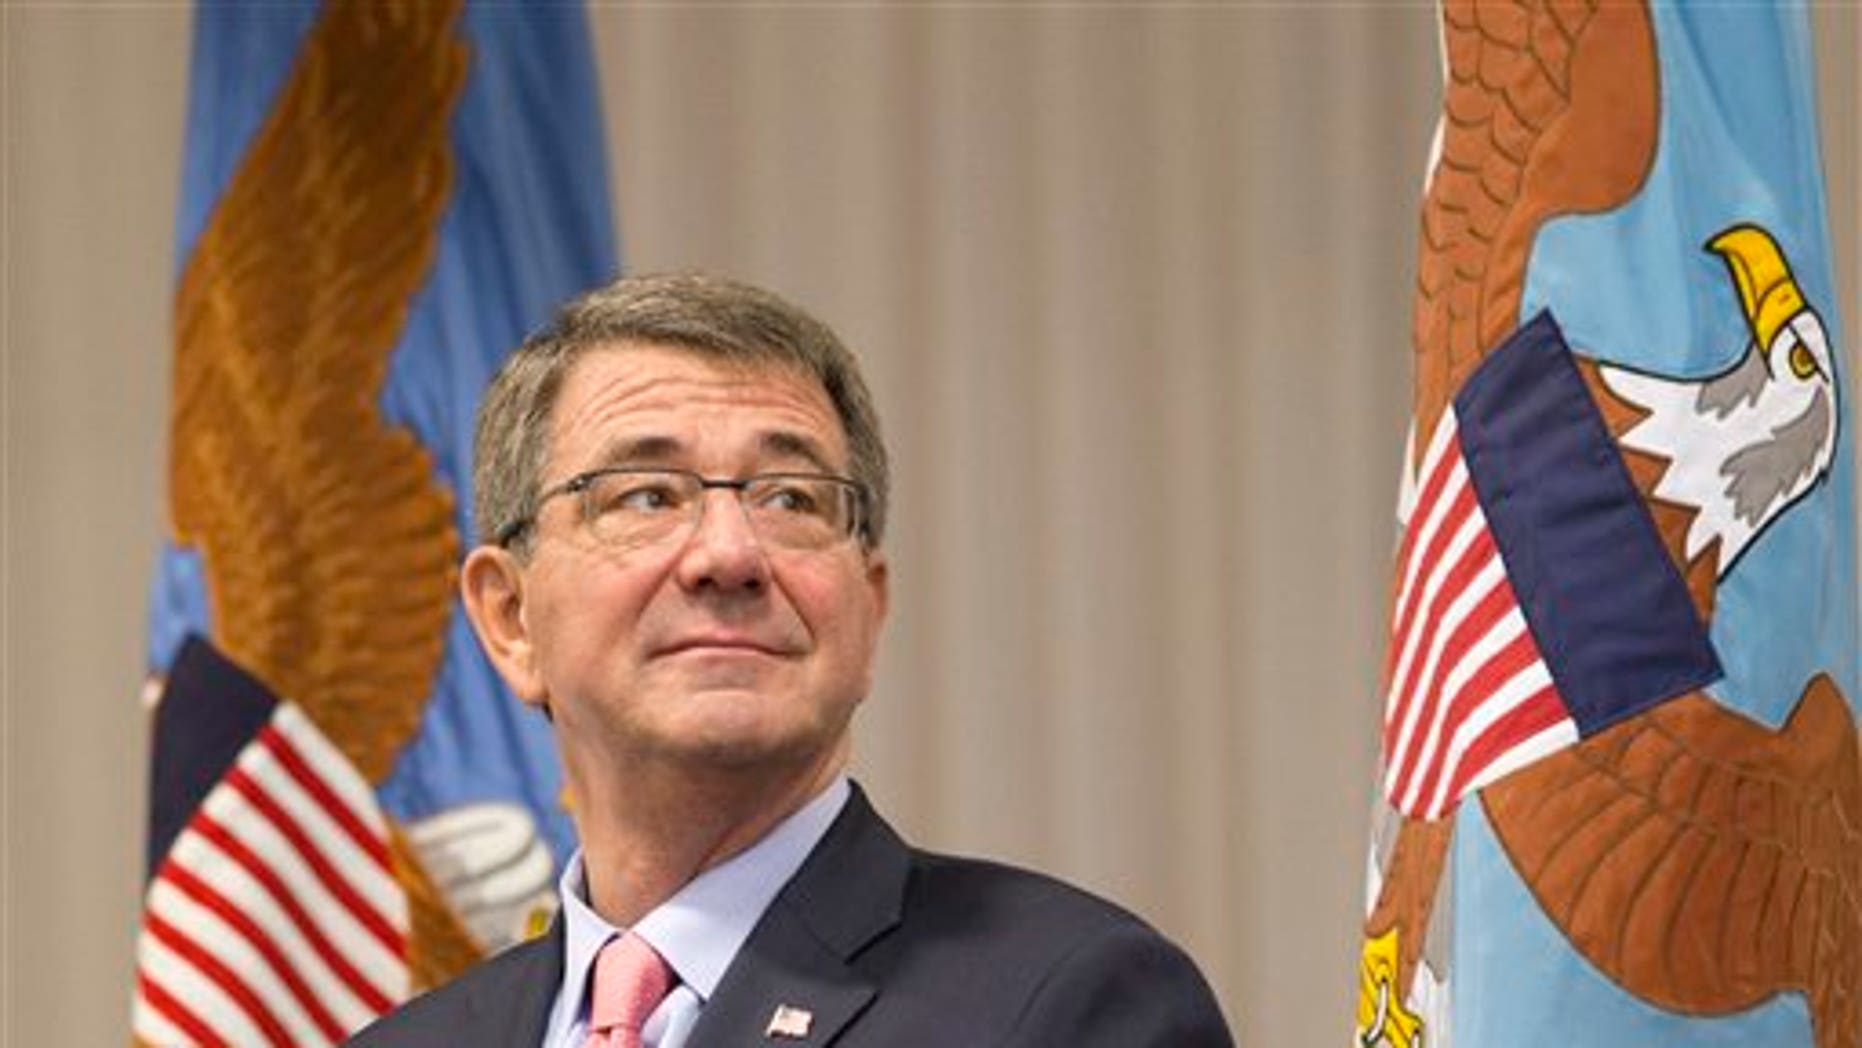 Defense Secretary Ash Carter watches during a change of command ceremony, Thursday, Jan. 14, 2016, at U.S. Southern Command in Miami. Ten prisoners from Yemen who were held at Guantanamo Bay, Cuba have been released and sent to the Middle Eastern nation of Oman for resettlement, Carter said Thursday. (AP Photo/Wilfredo Lee)